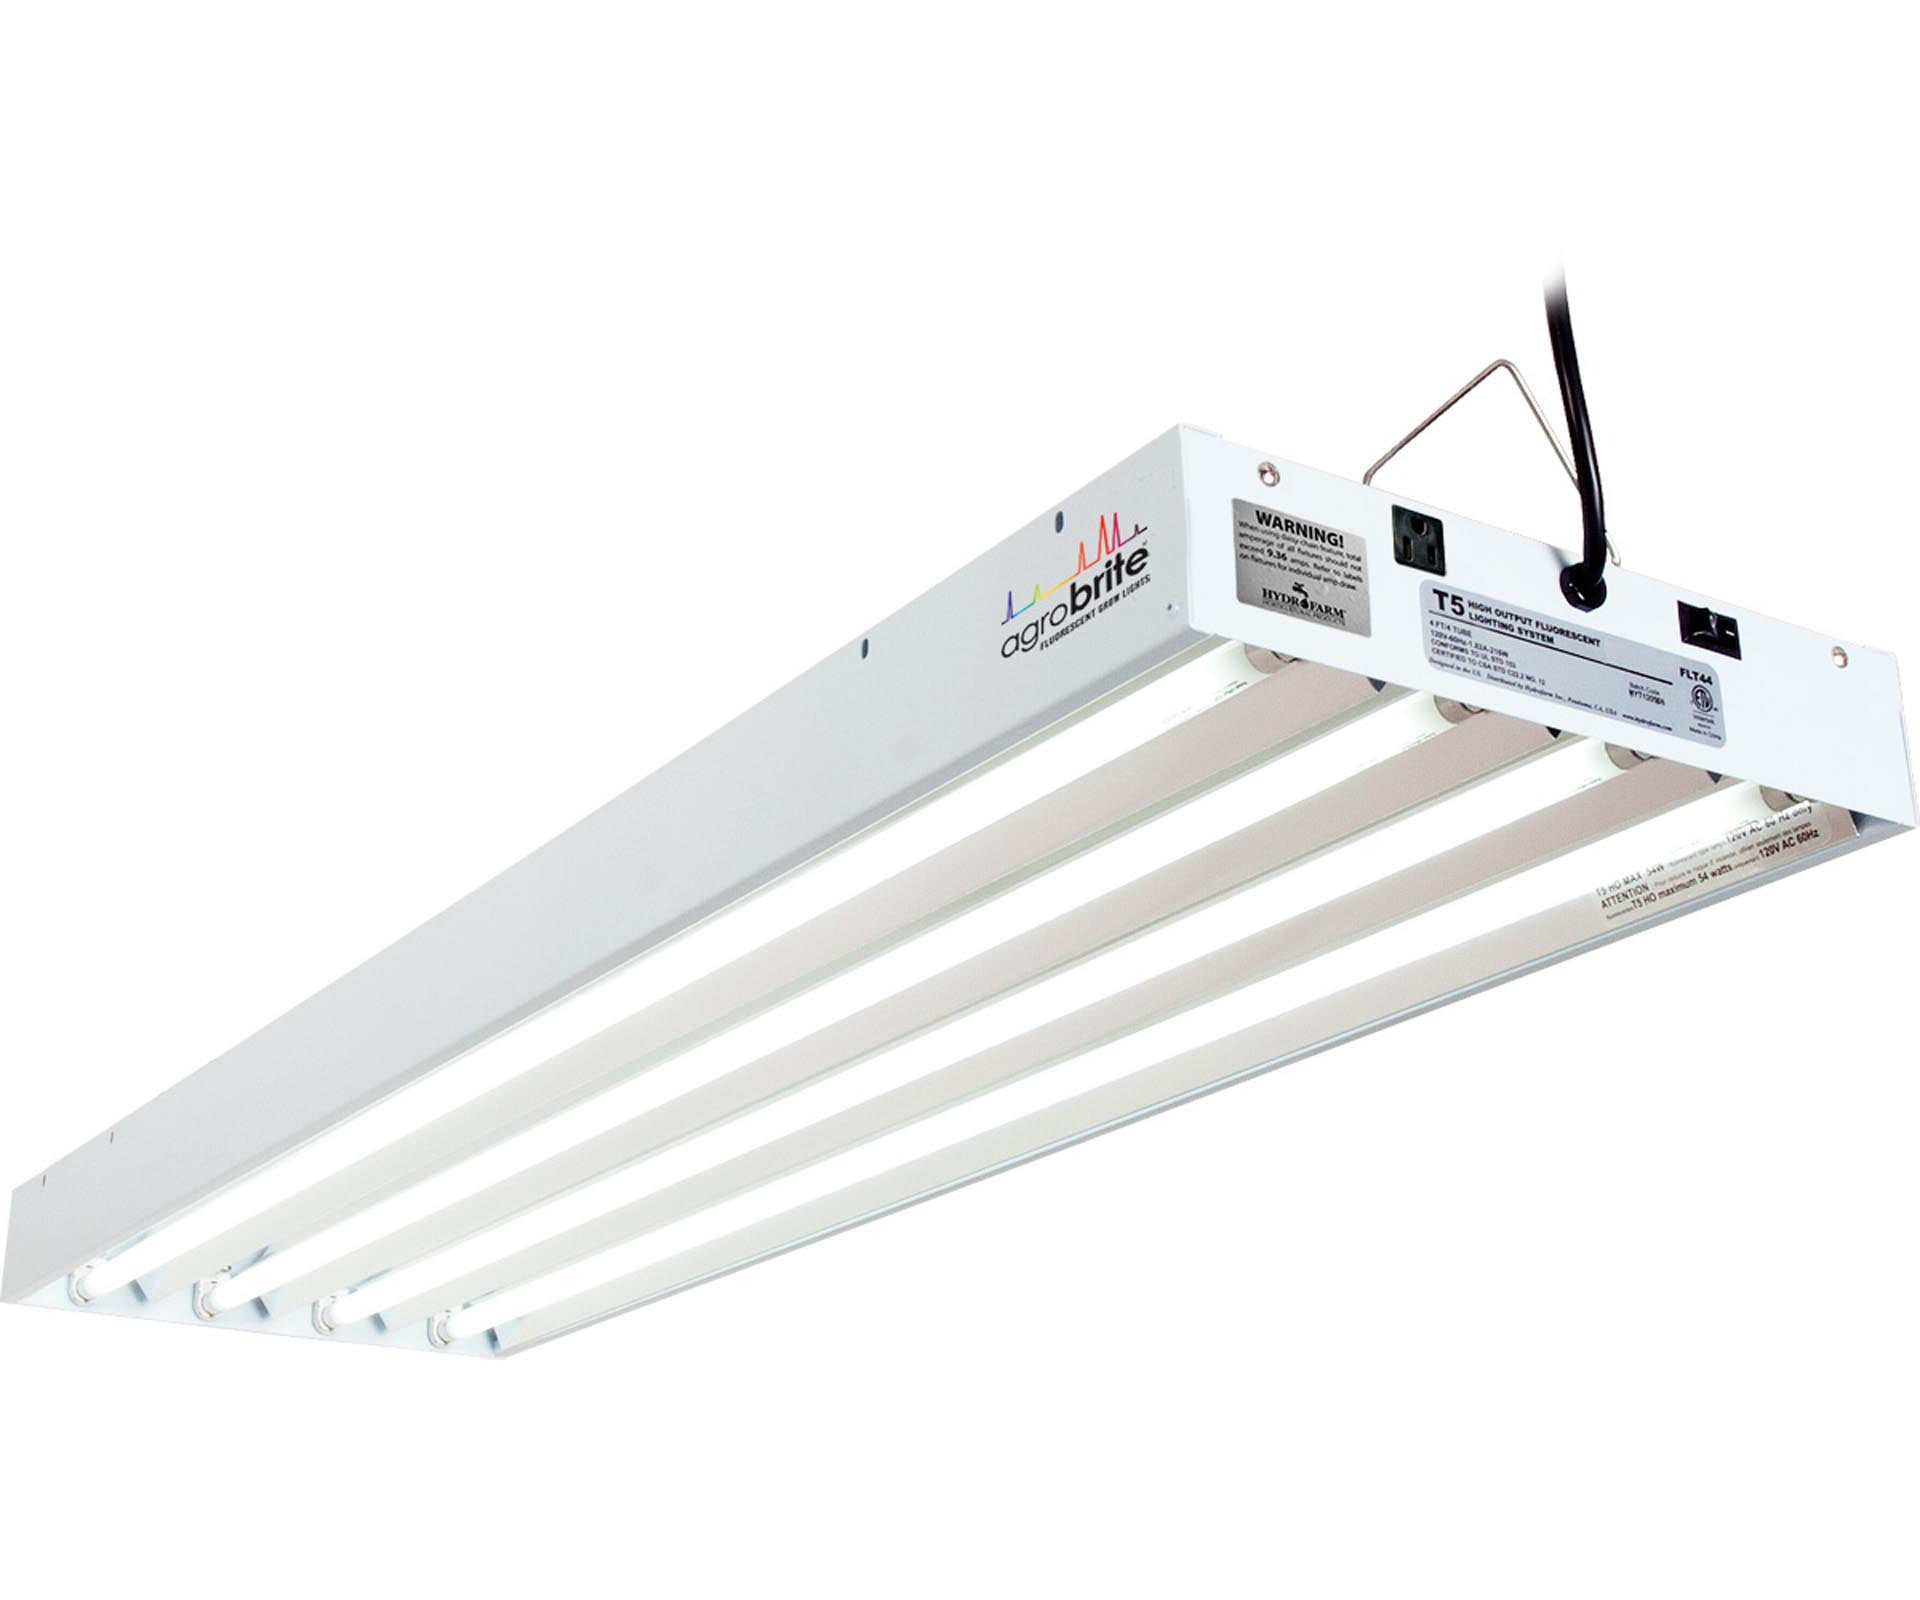 Agrobrite t5 216w 4 4 tube grow light fixture w fluorescent lamps